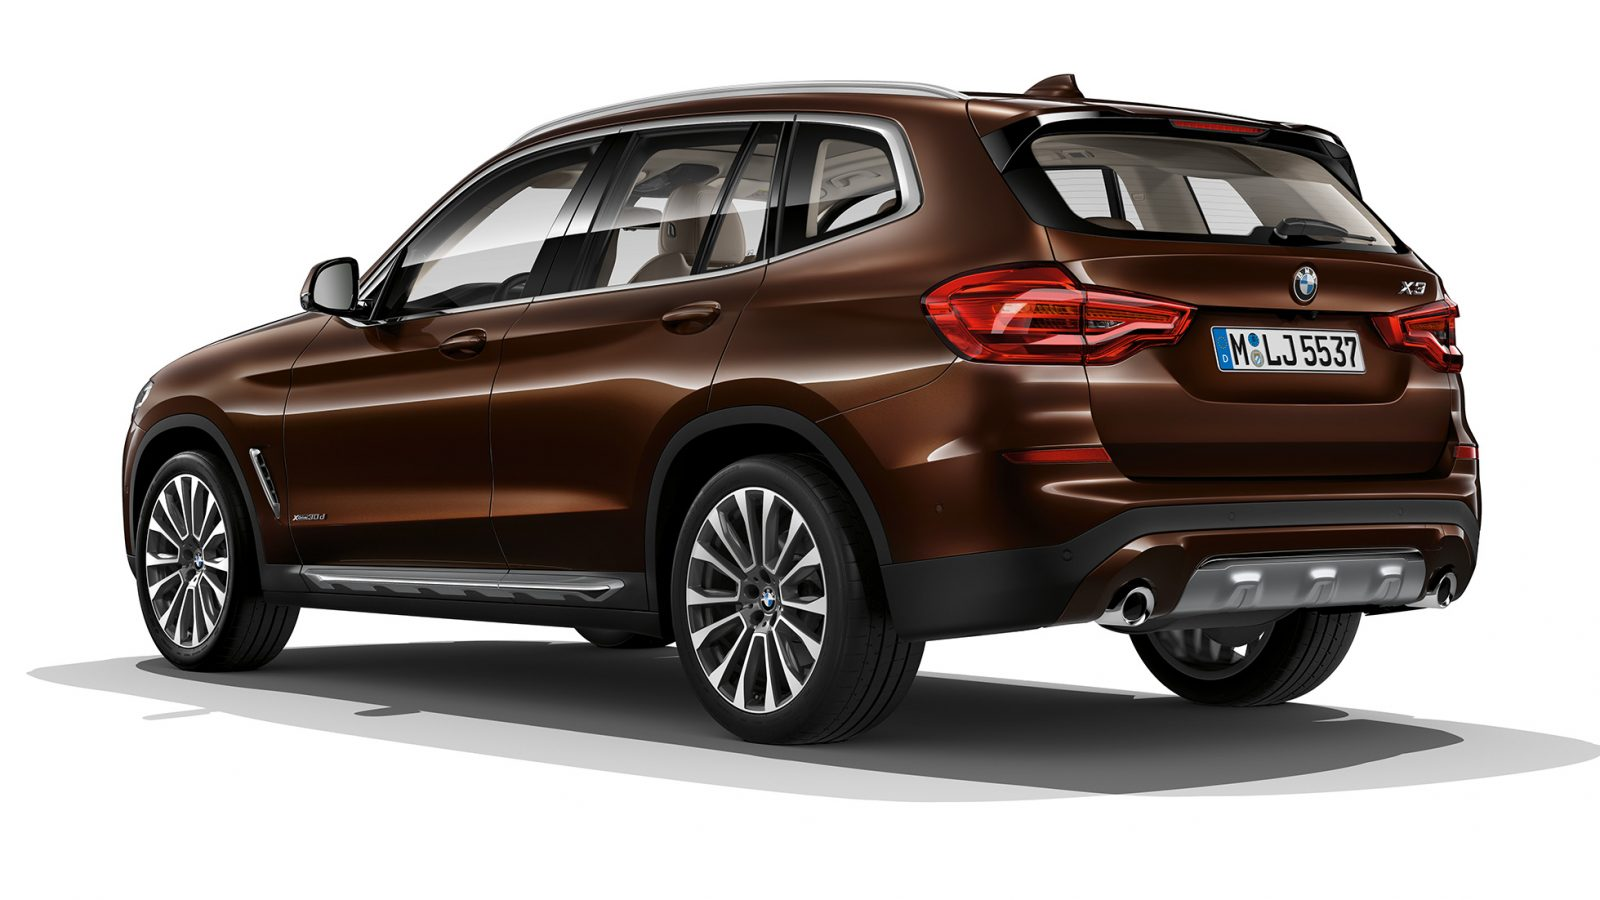 bmw-x3-inform-lines-luxury-line-02